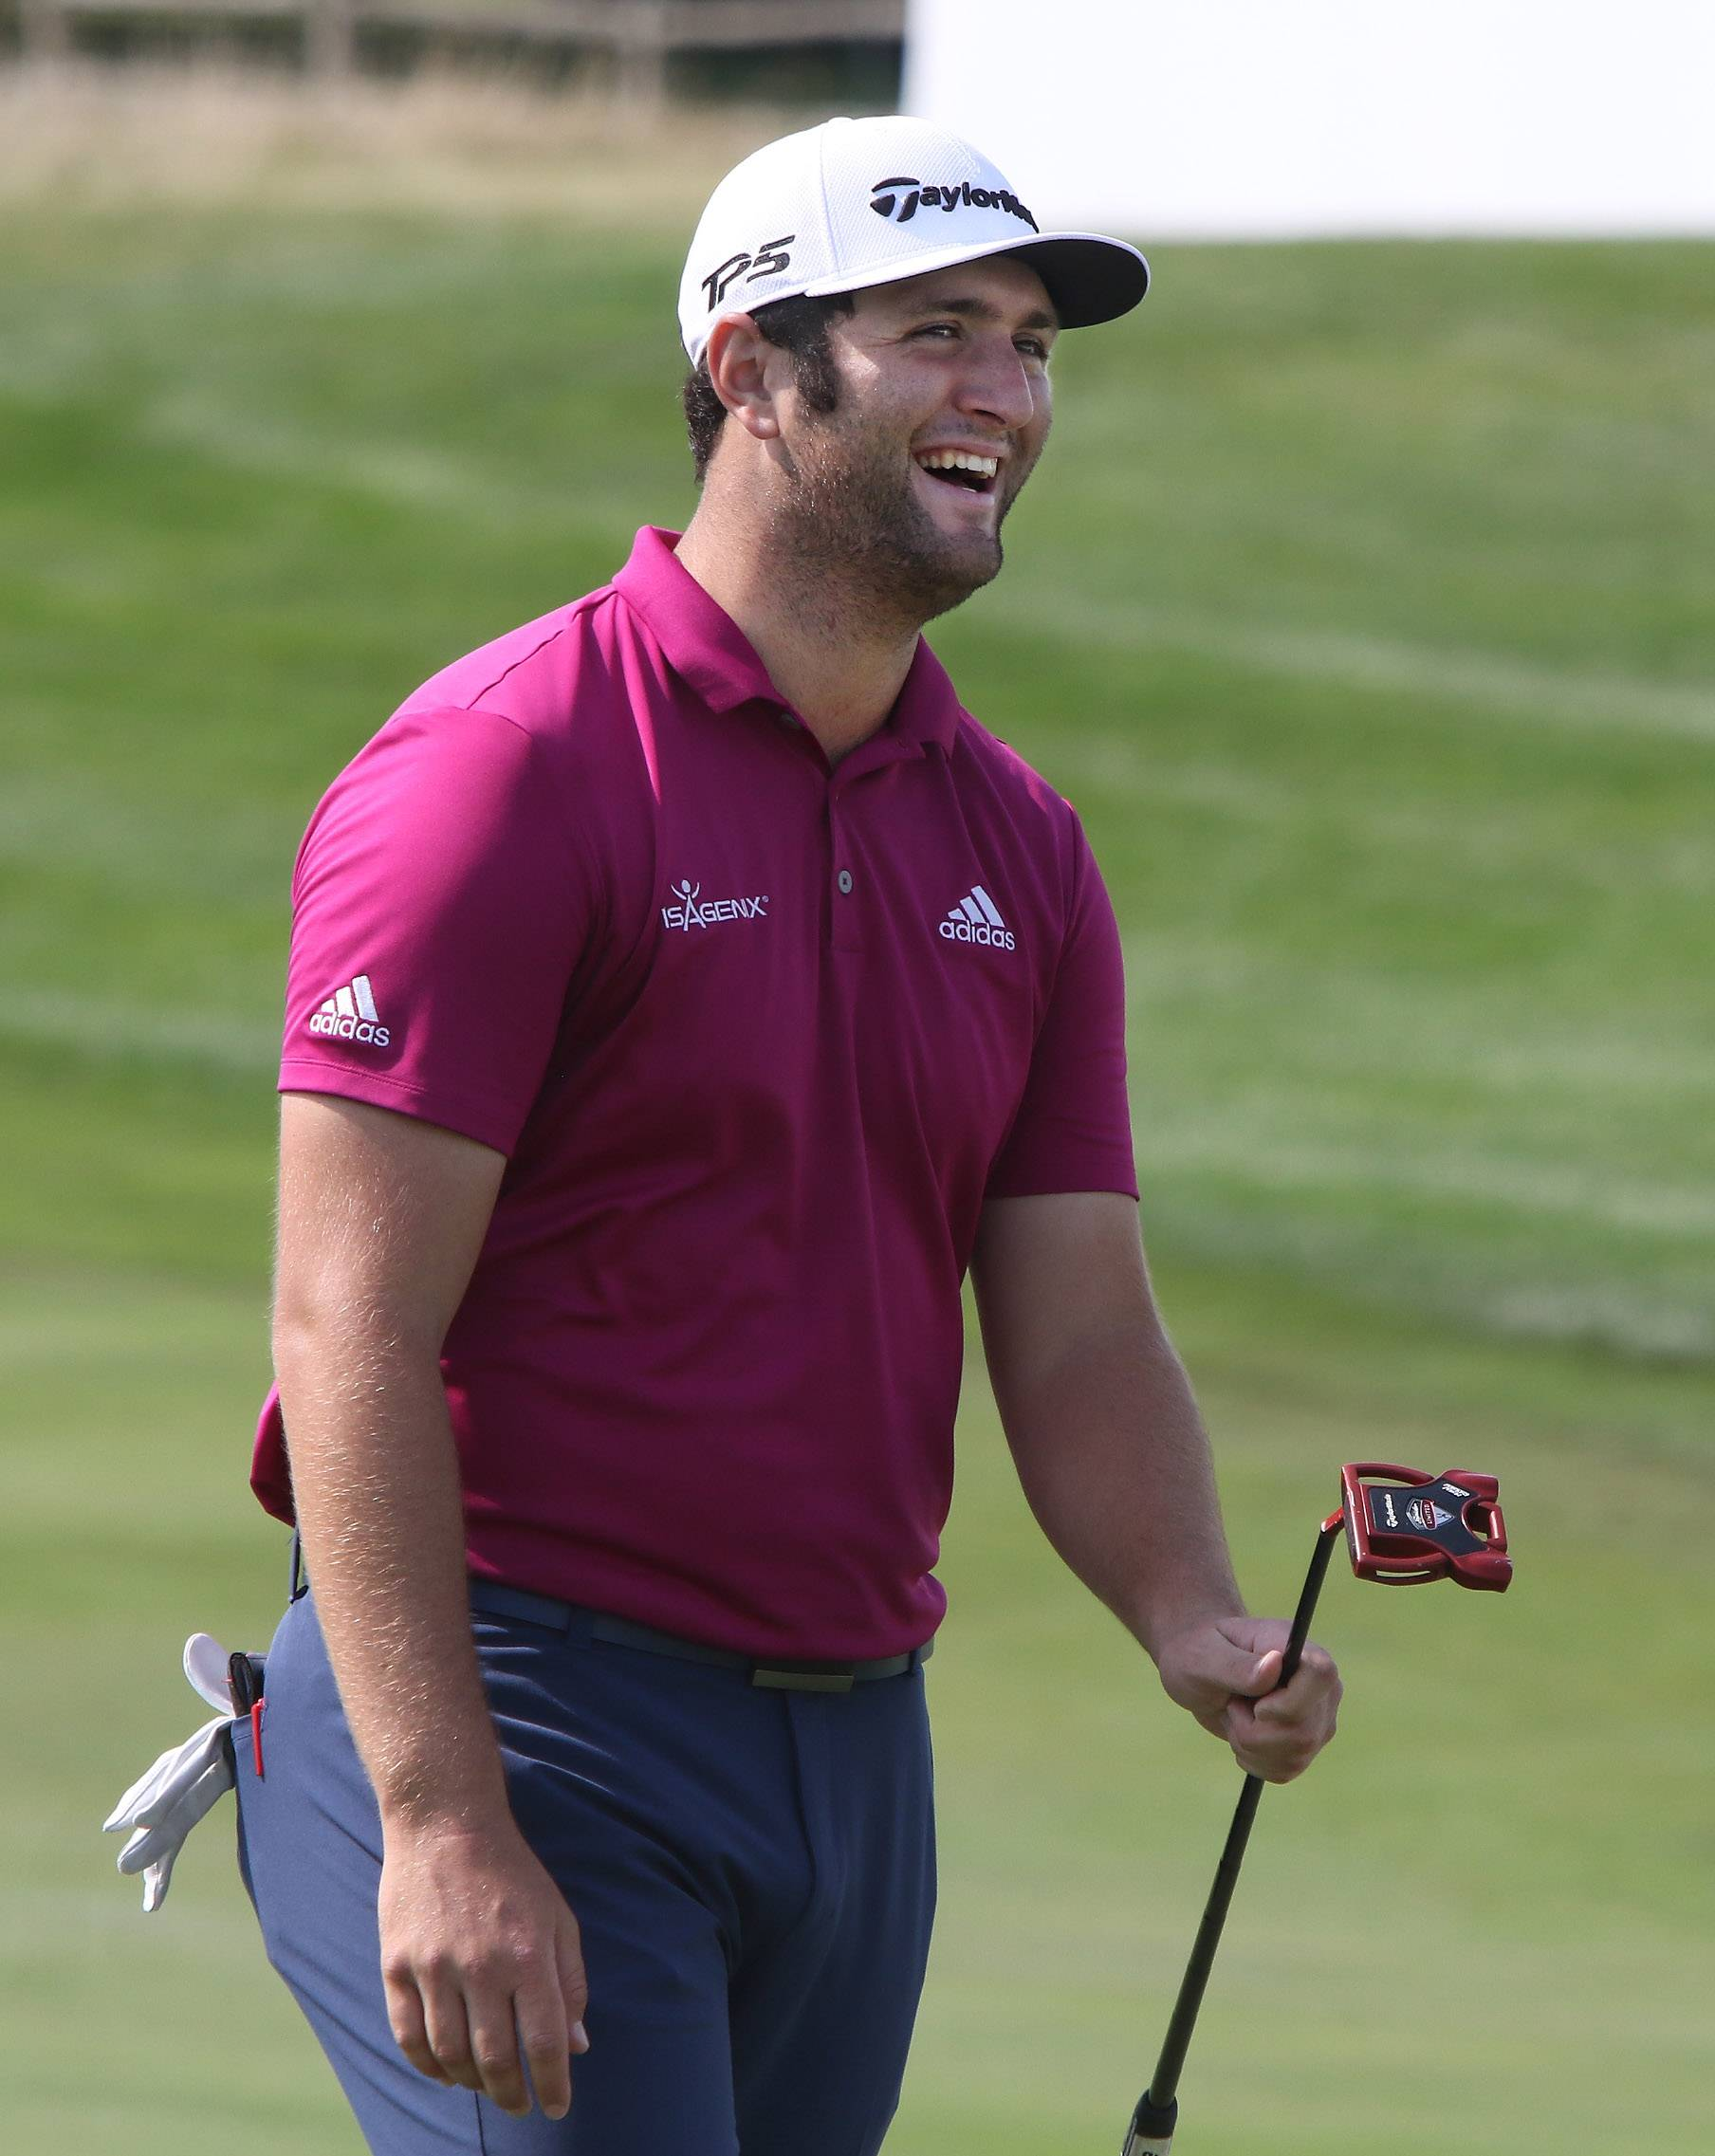 Jon Rahm, here preparing for the BMW Championship on Tuesday at Conway Farms Golf Club in Lake Forest, has climbed to No. 5 in the World Golf Rankings.